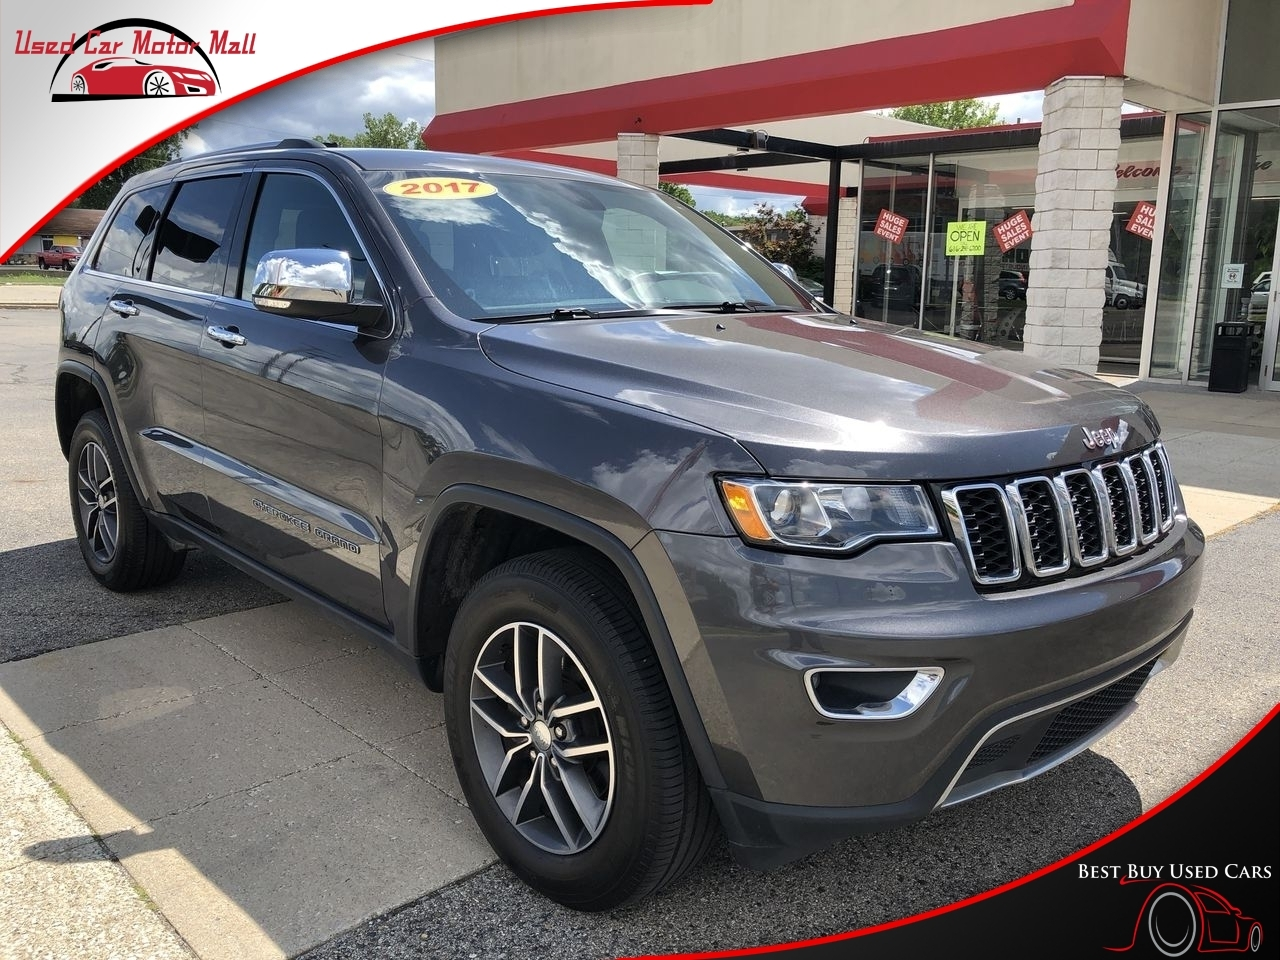 2017 Jeep Grand Cherokee Laredo 4WD, 651493, Photo 1